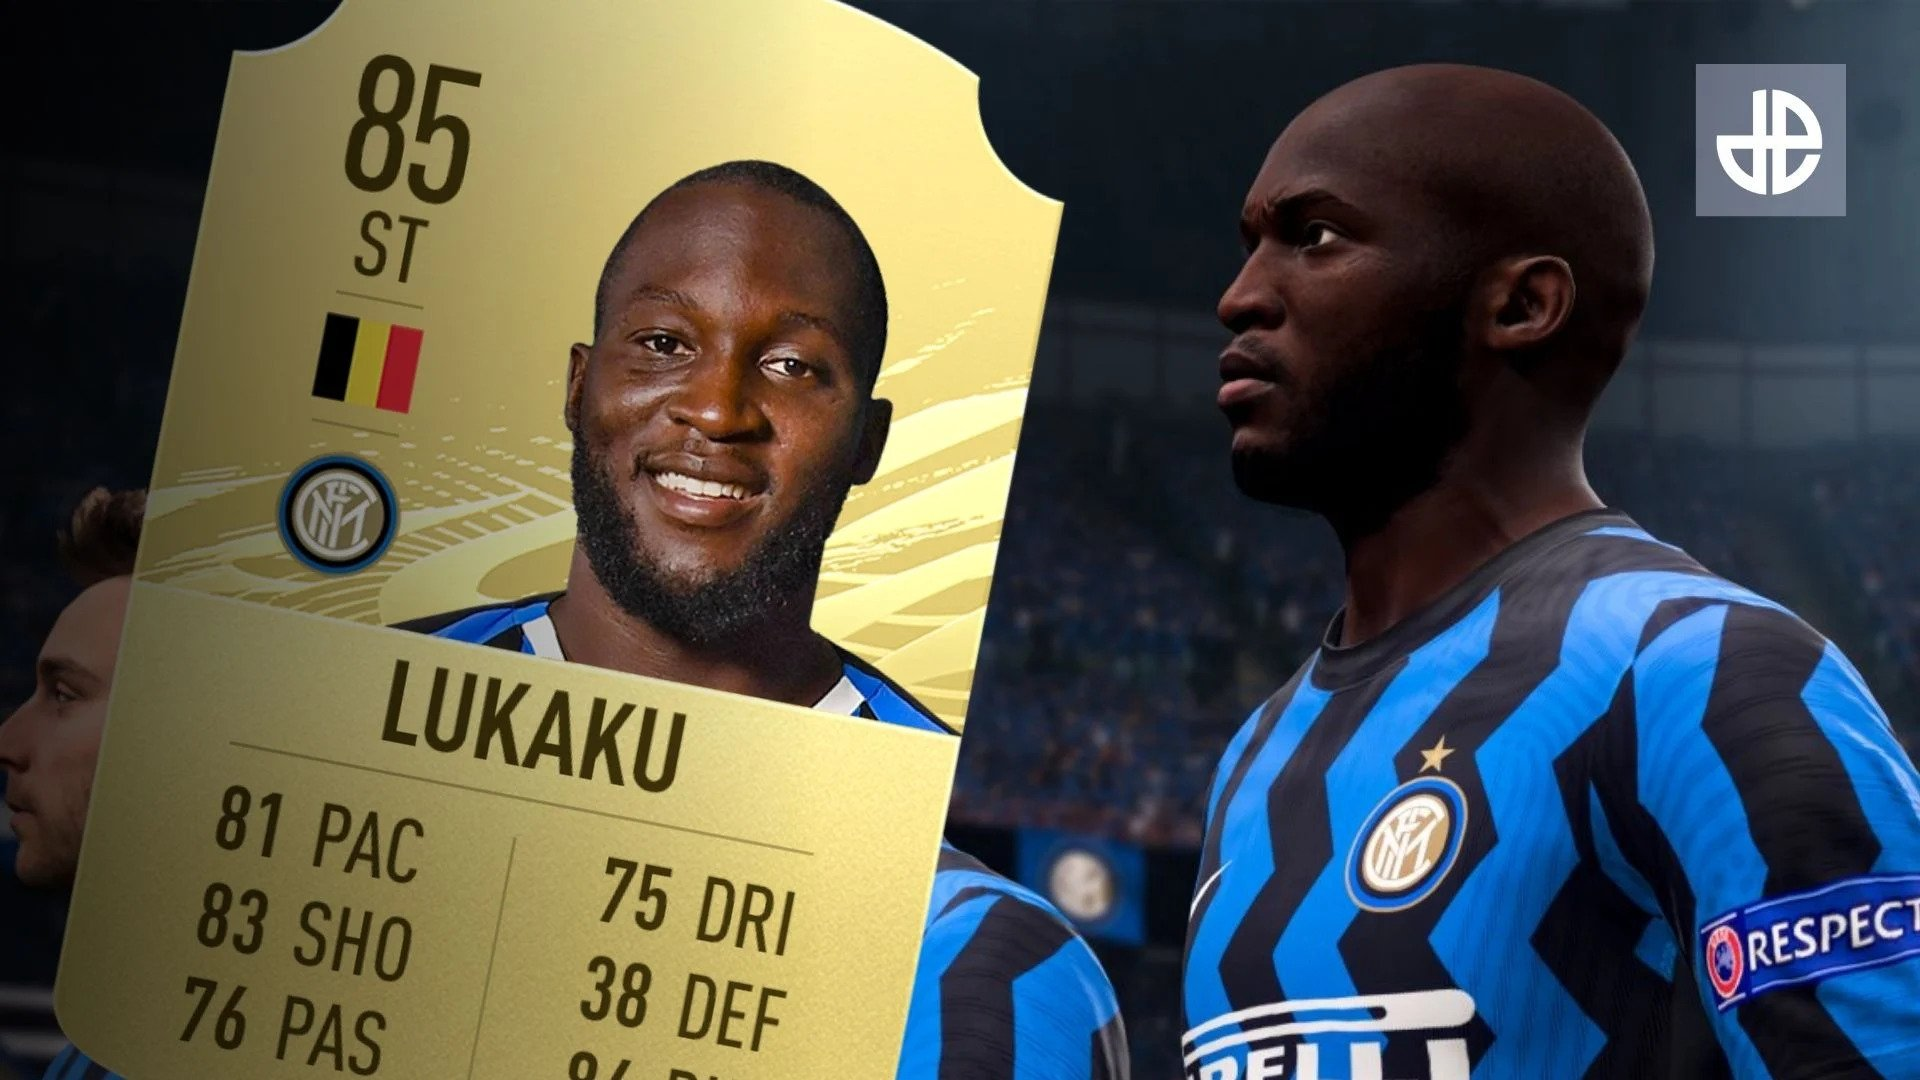 Inter Milan forward Romelu Lukaku has slammed the makers of FIFA21, going on a twitter rant after he was downgraded by one percentage point.